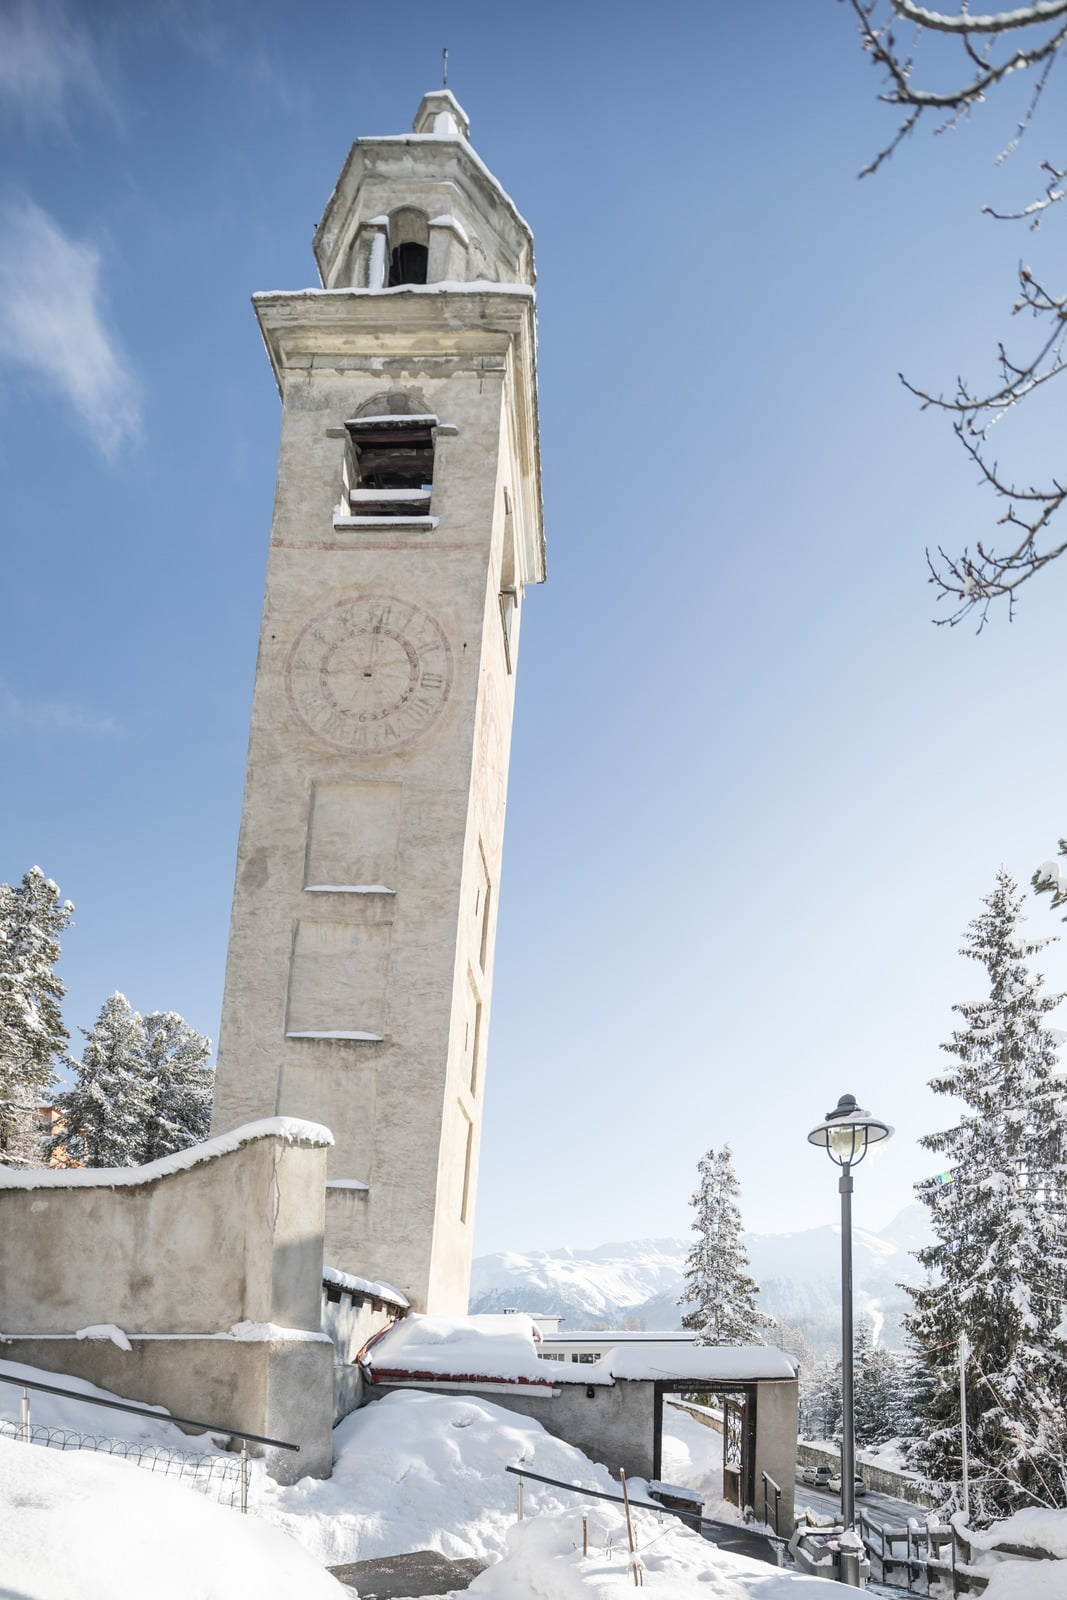 The leaning Tower of St. Moritz